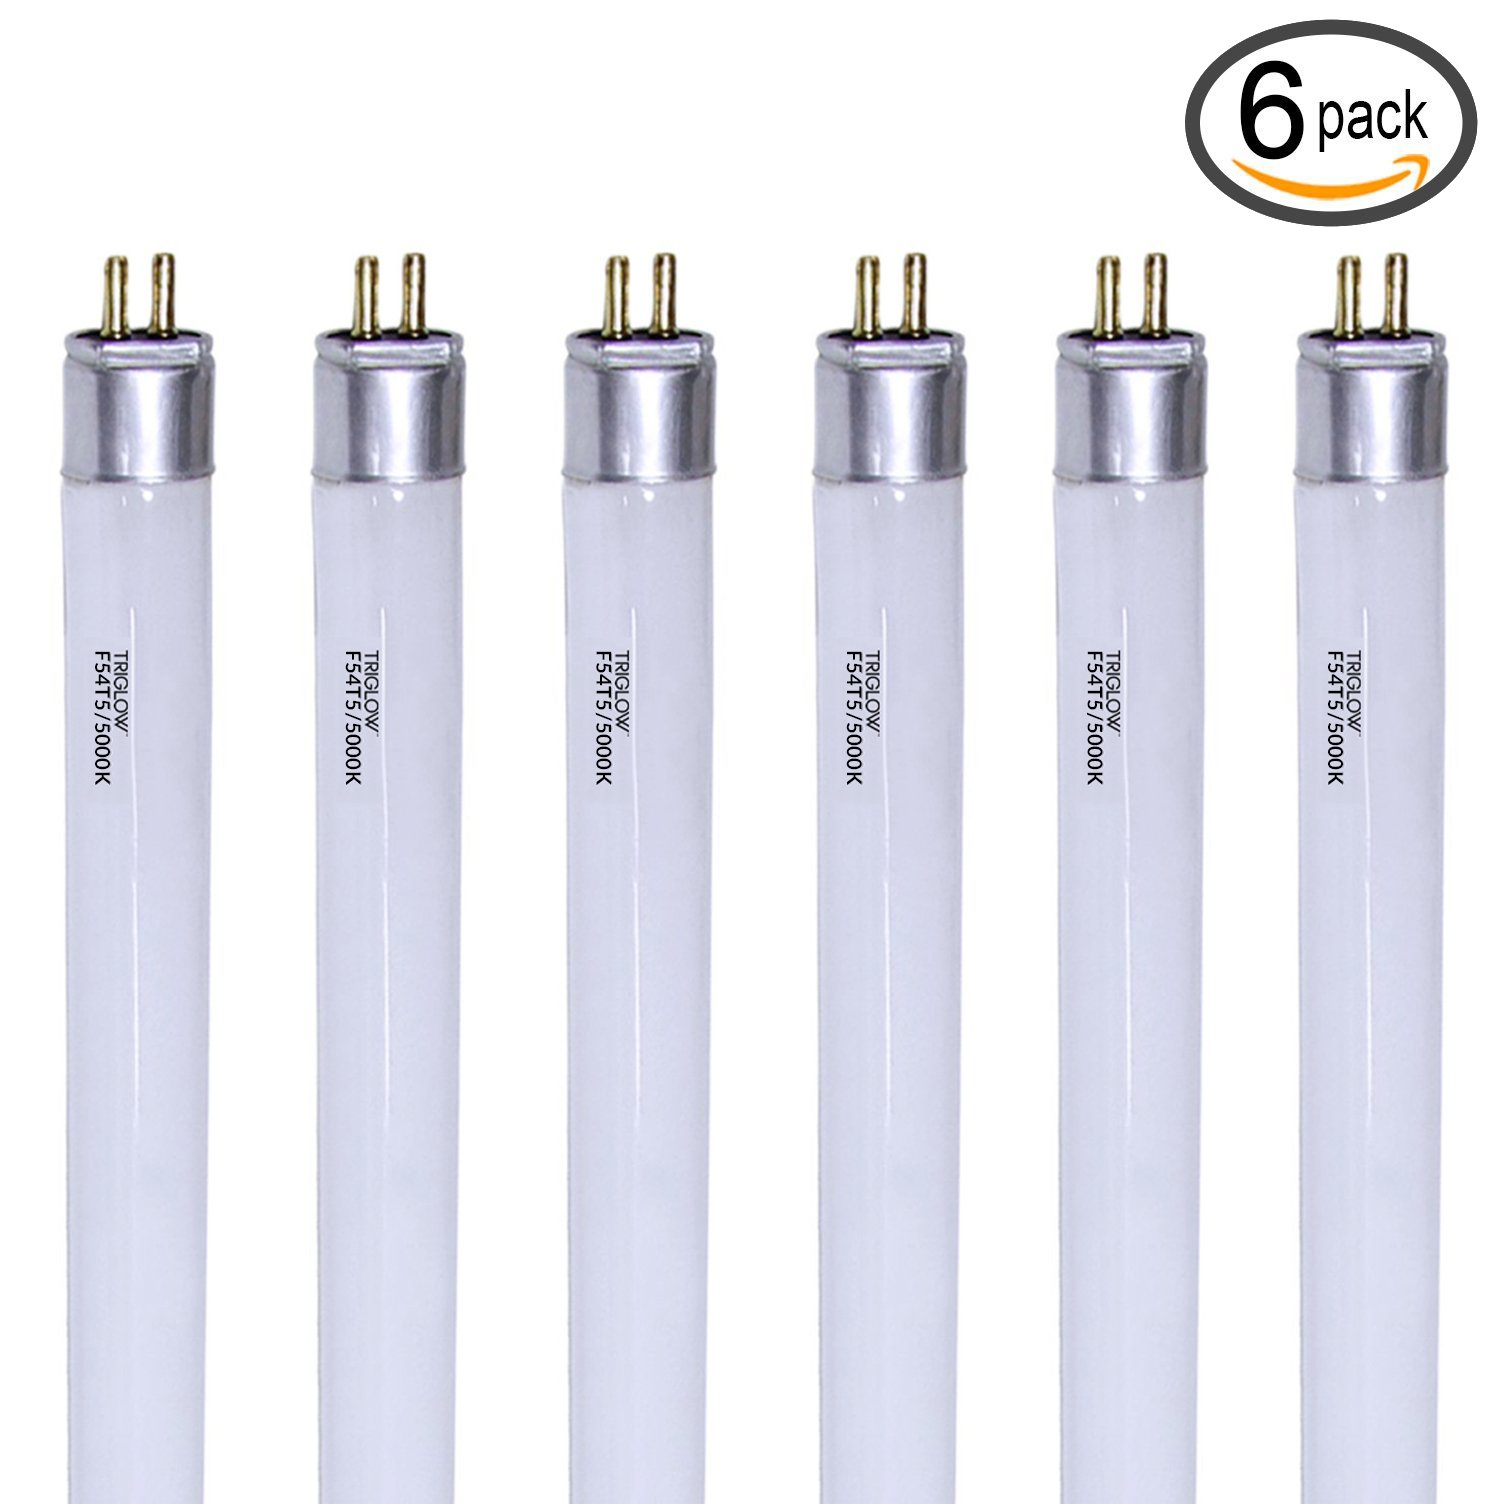 TriGlow (Pack of 6) F54T5/850/HO 54-Watt T5 High Output 5000K Super White Light Bulbs